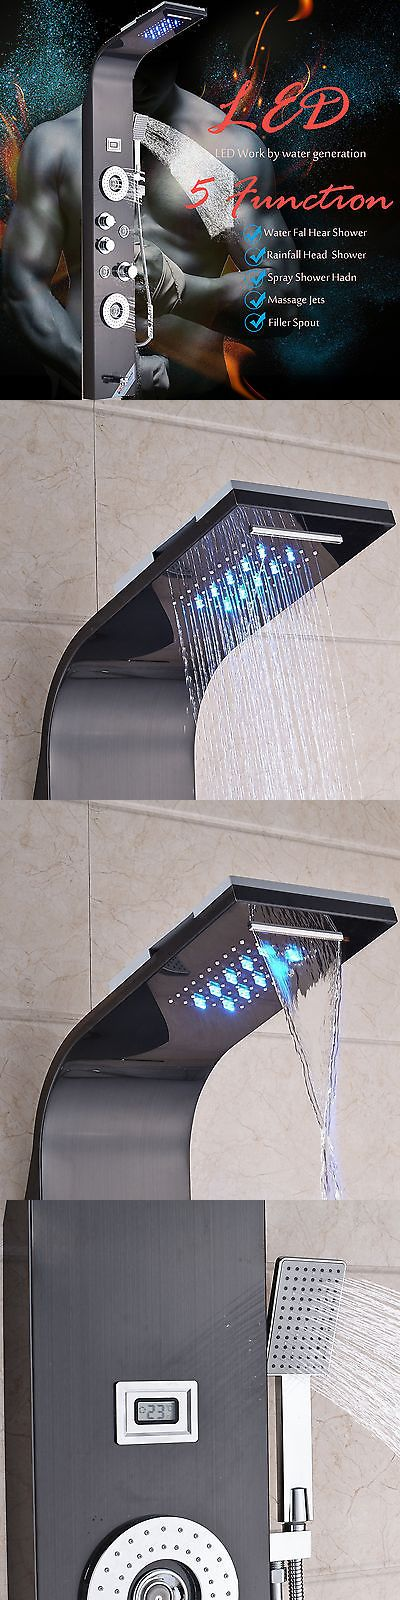 Massagers: Led 60 Brushed Black Bathroom Shower Panel Column Faucet Massage Spa Jets -> BUY IT NOW ONLY: $276.08 on eBay!